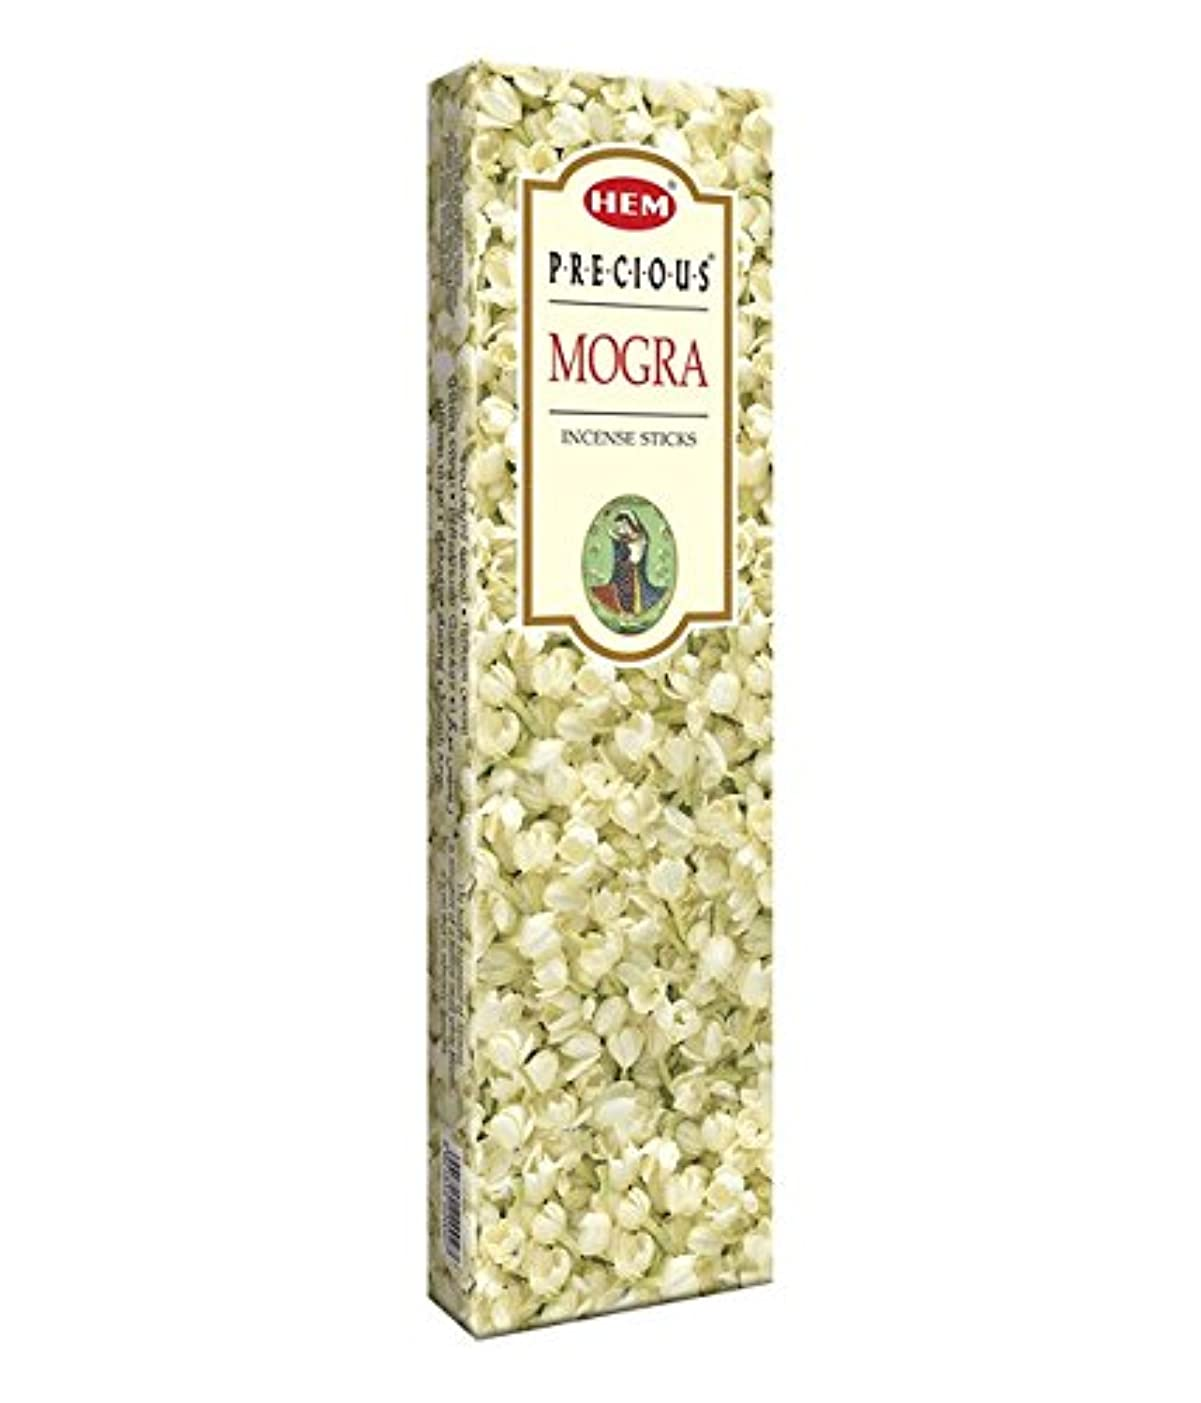 道徳教育購入シャトルAgarbathi Fragrance Hem Precious Mogra 100 g INCENSE STICKS